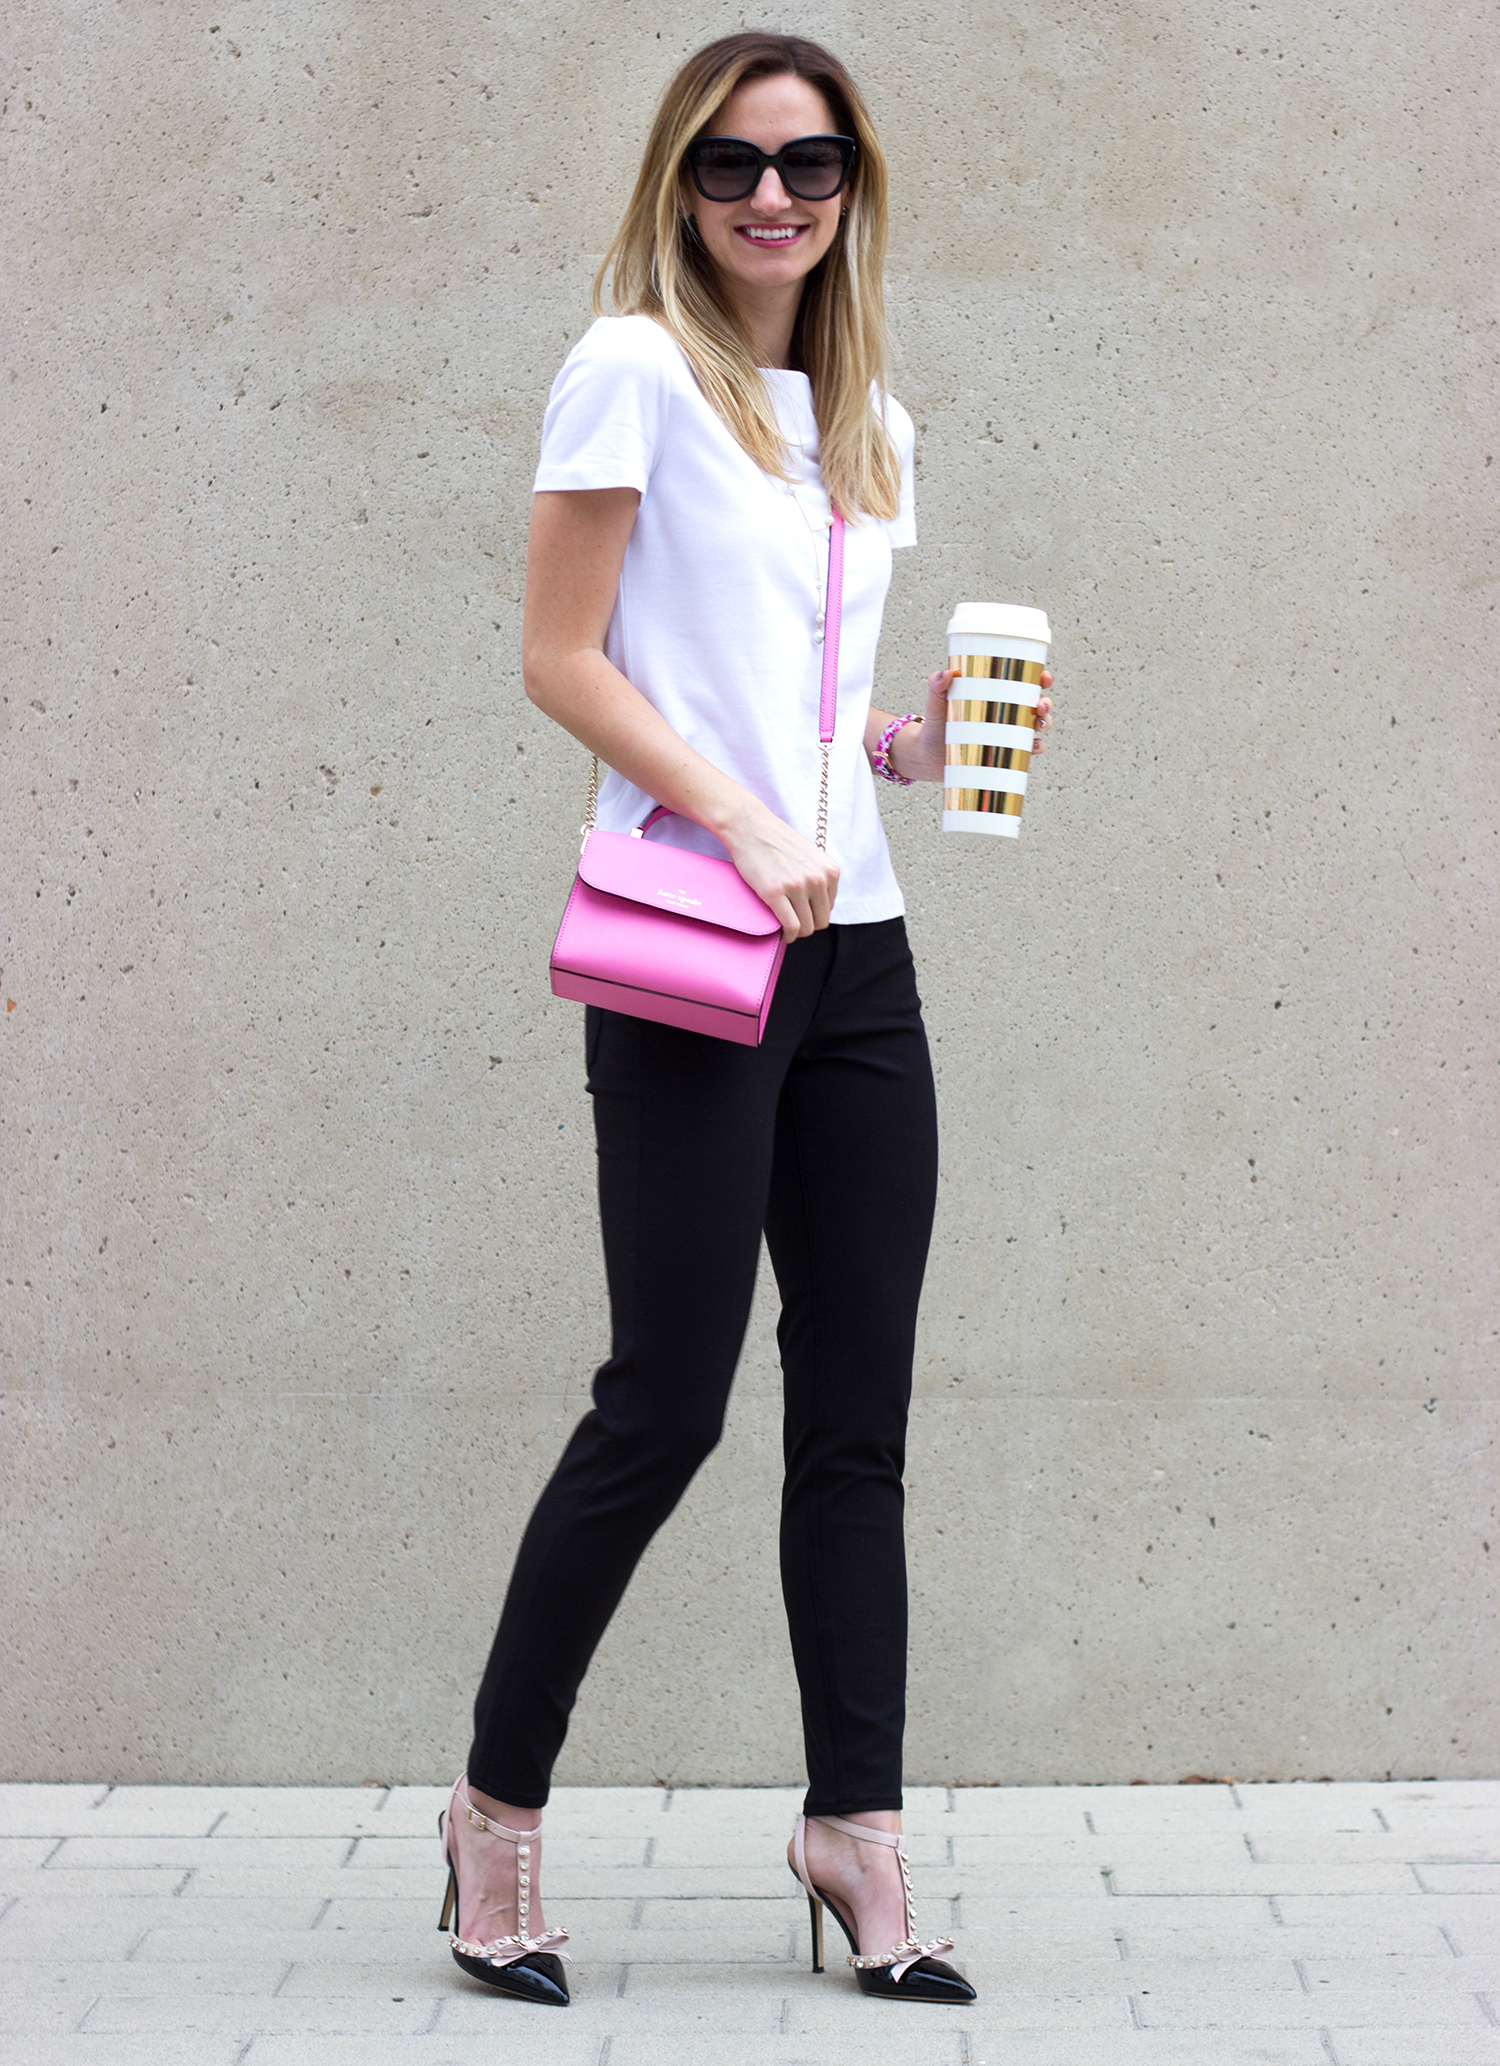 livvyland-blog-olivia-watson-kate-spade-broome-street-everyday-tee-cigarette-pants-rockstud-heels-black-white